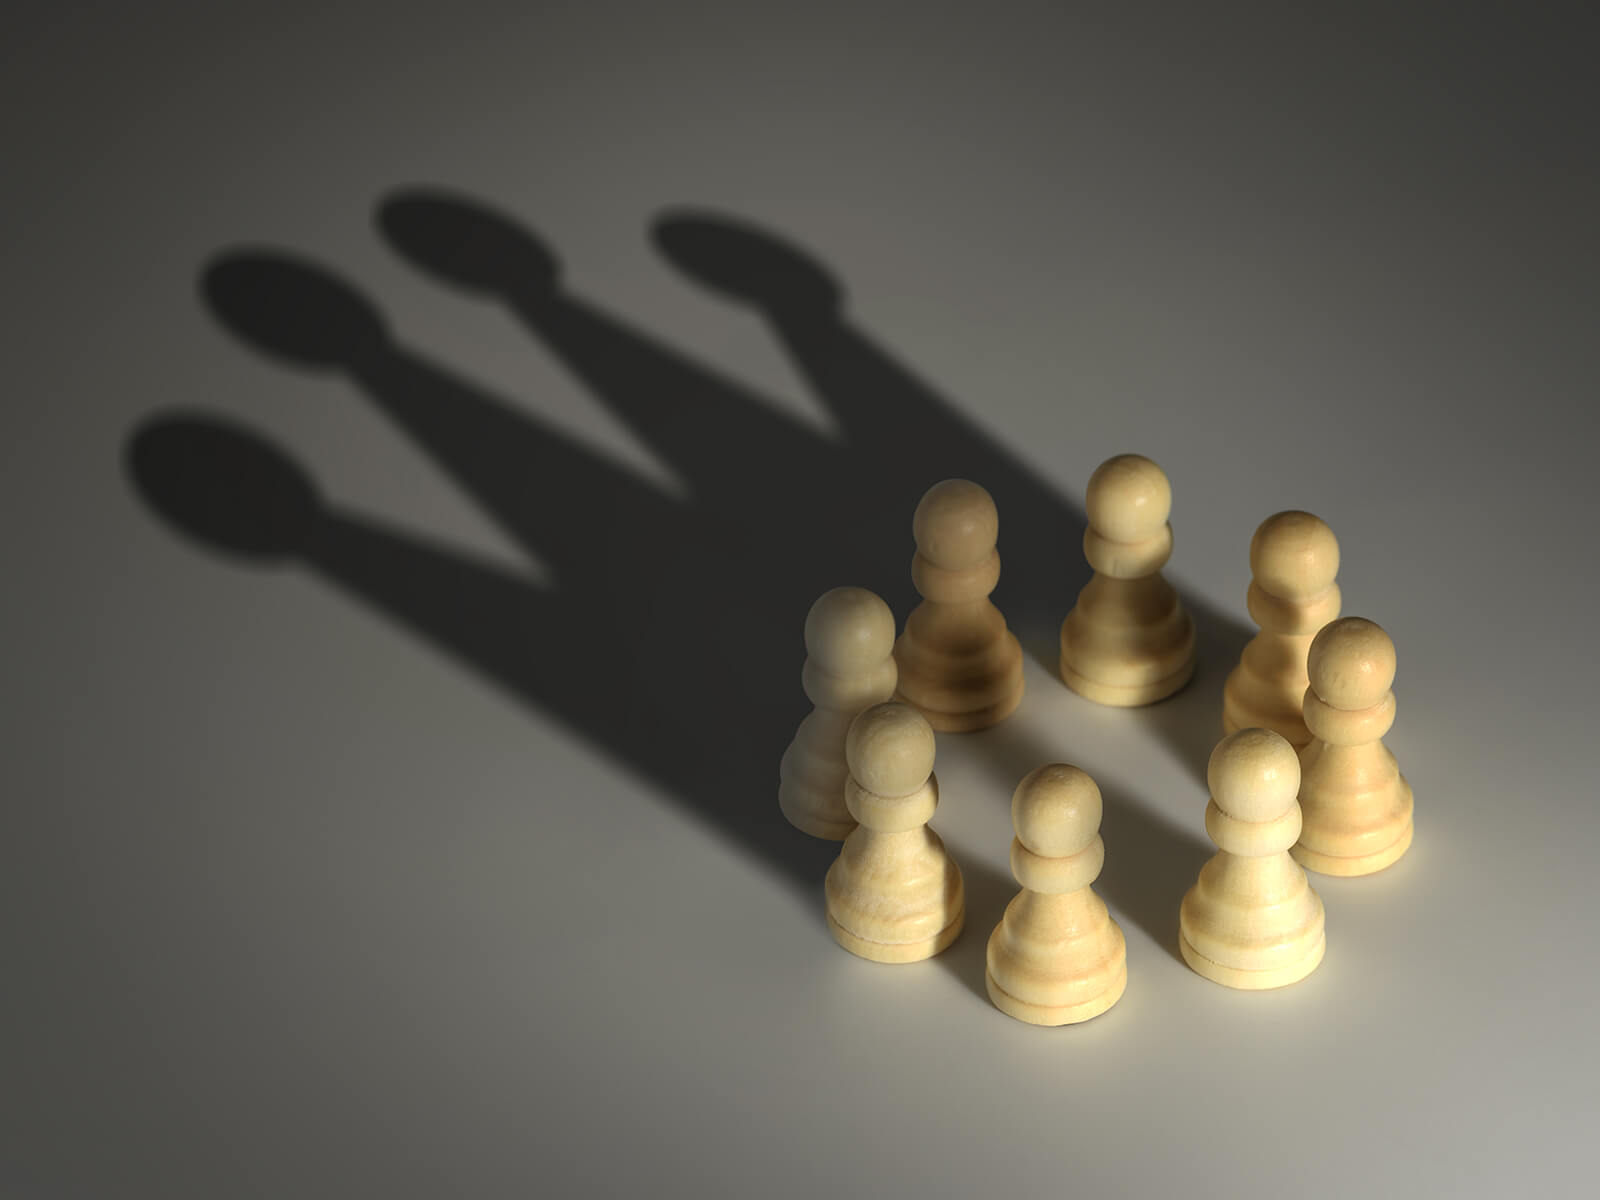 Building alliances to compete with the digital Goliaths